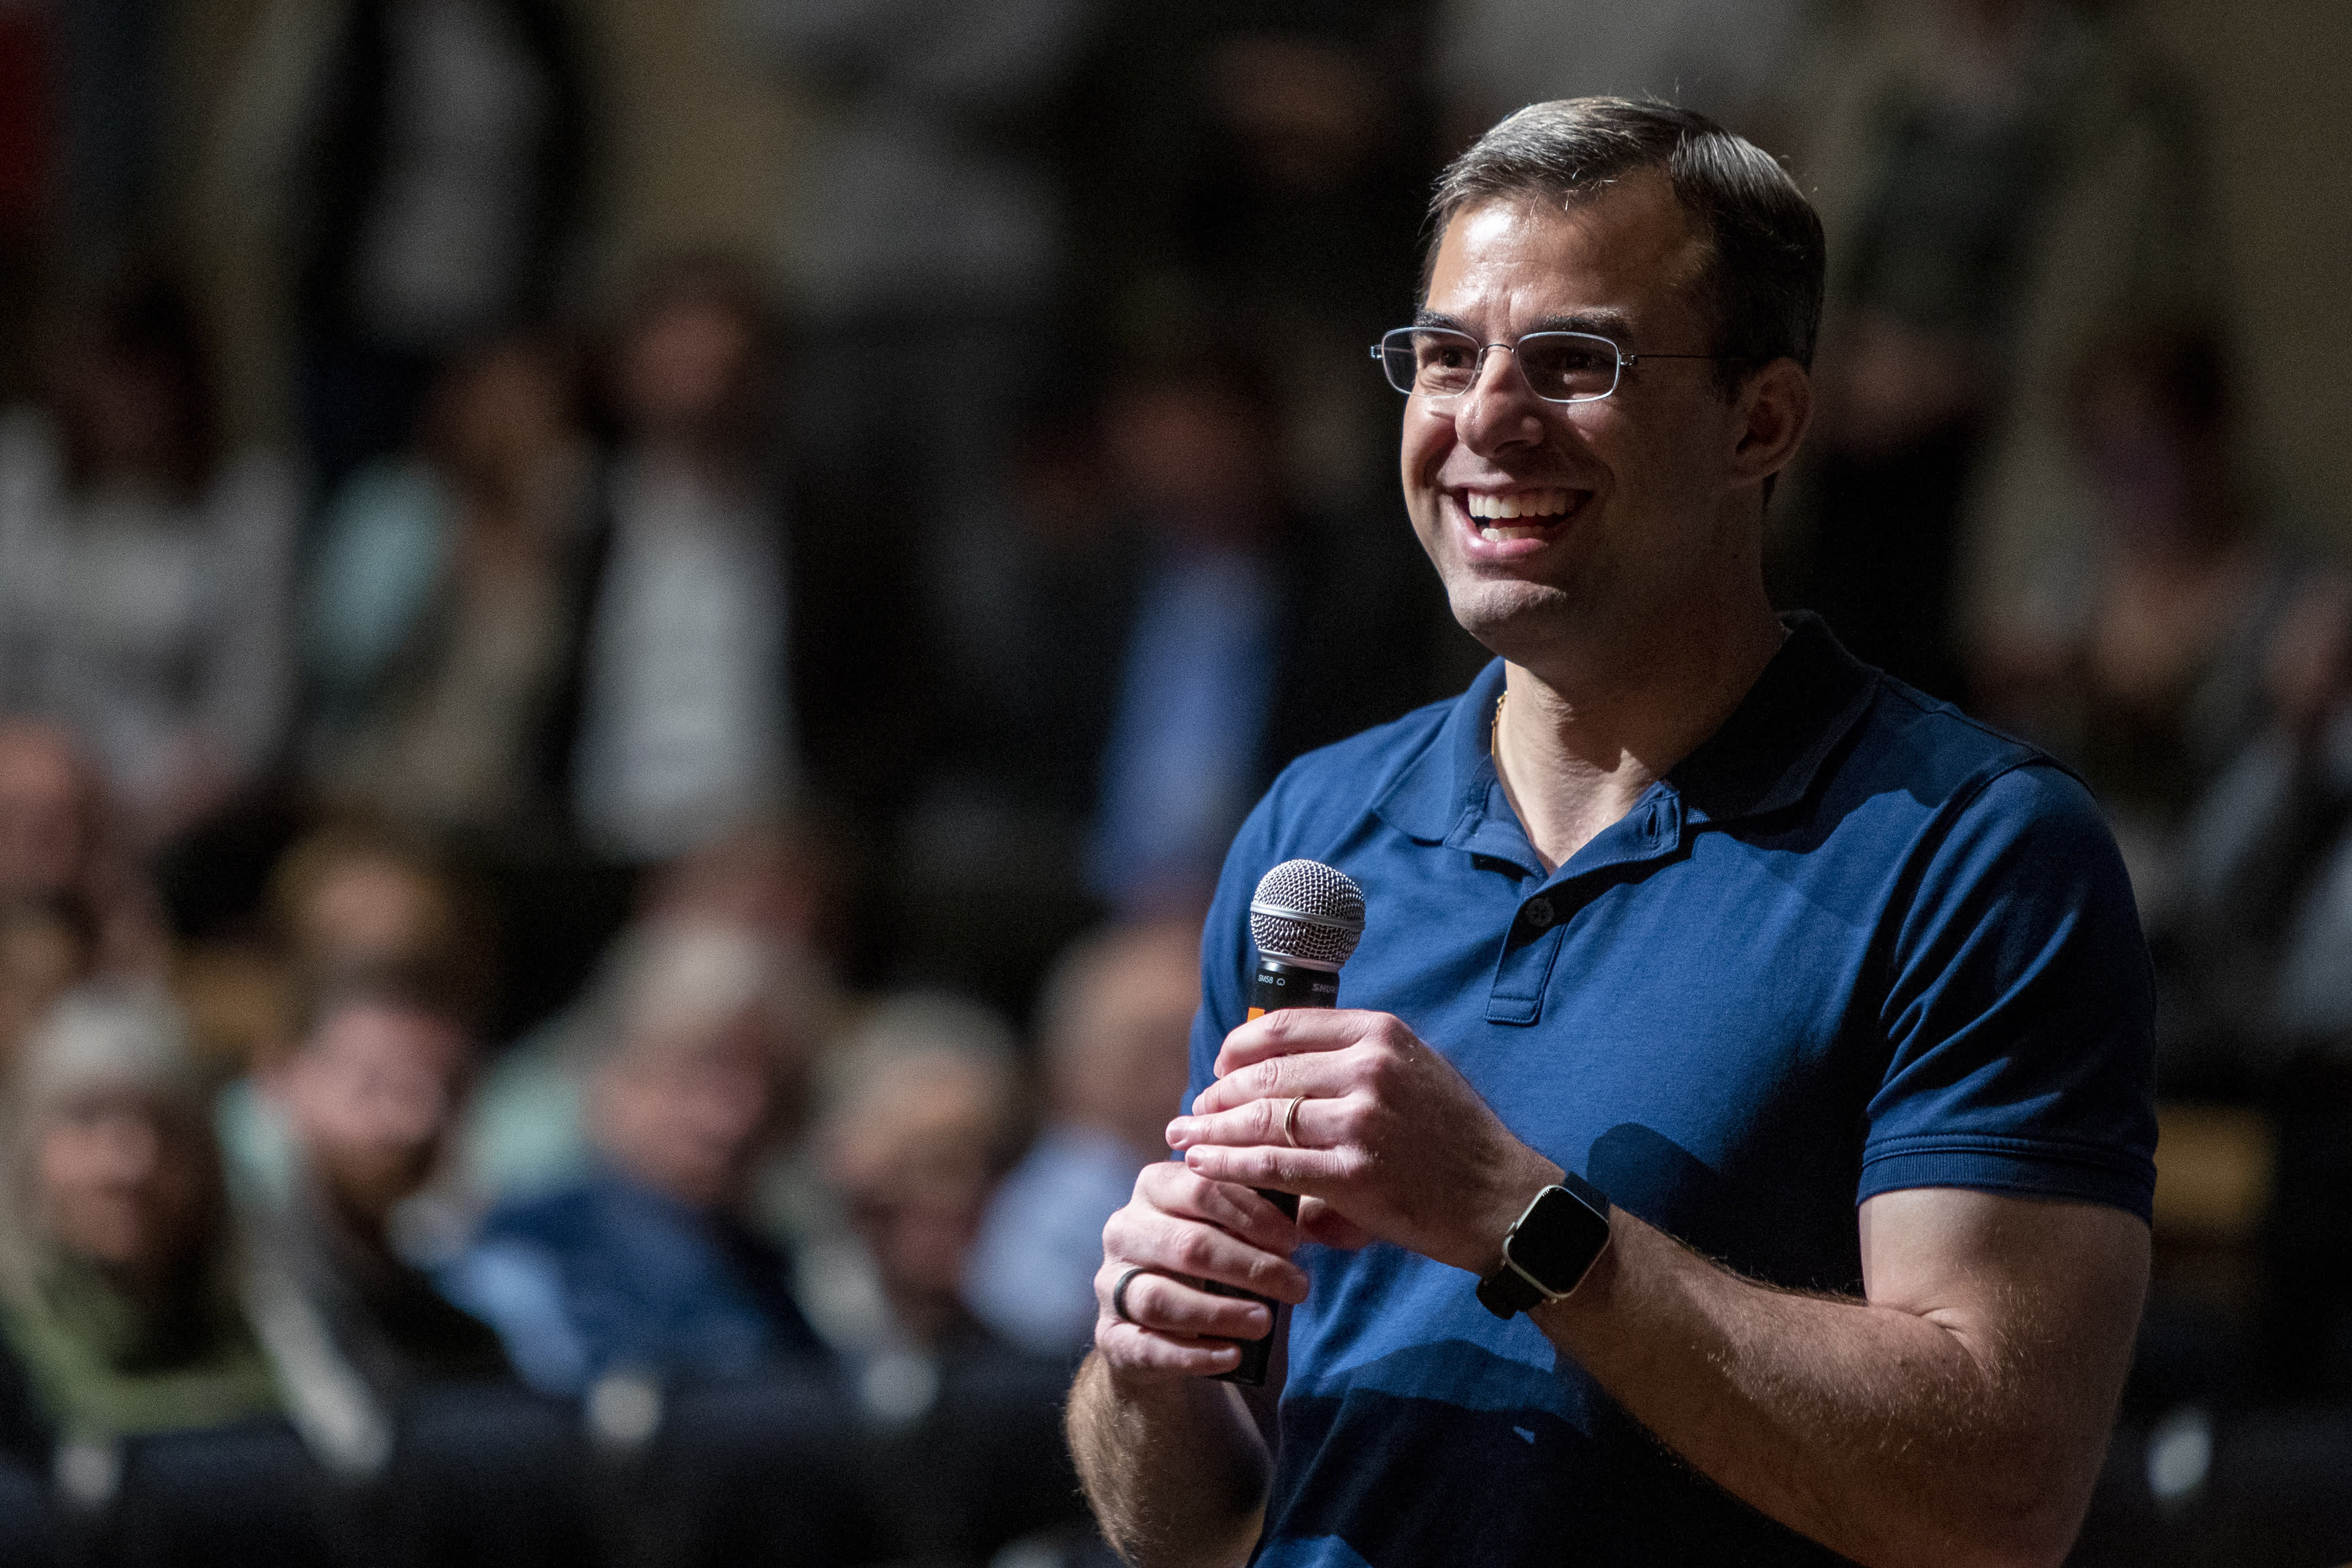 U.S. Rep. Justin Amash, R-Cascade Township, holds a town hall meeting at Grand Rapids Christian High School's DeVos Center for Arts and Worship on Tuesday, May 28, 2019. The congressman came under scrutiny May 18 when he posted a series of Tweets to outline his support for impeachment proceedings. As such, he is the only Republican congress member to do so. The following days brought an announcement from the wealthy DeVos family about no longer supporting him financially. (Cory Morse/The Grand Rapids Press via AP)